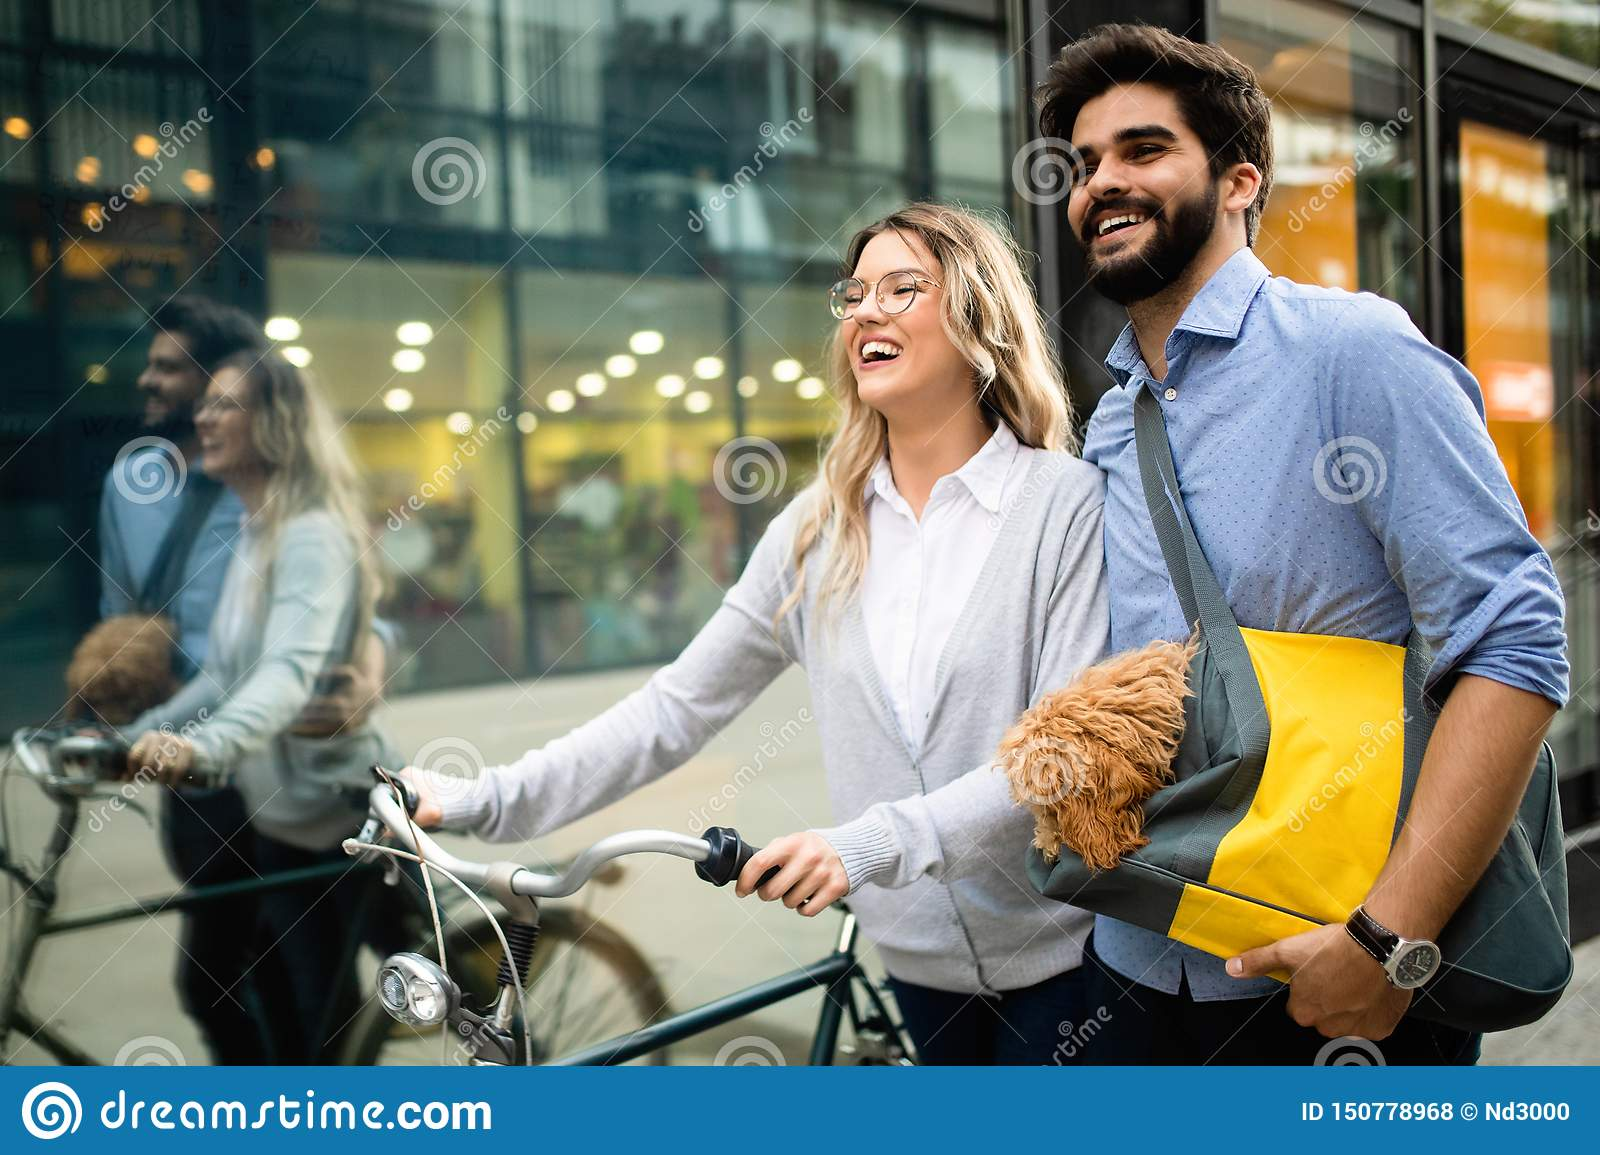 Happy young couple spending time together with dog and bicycles